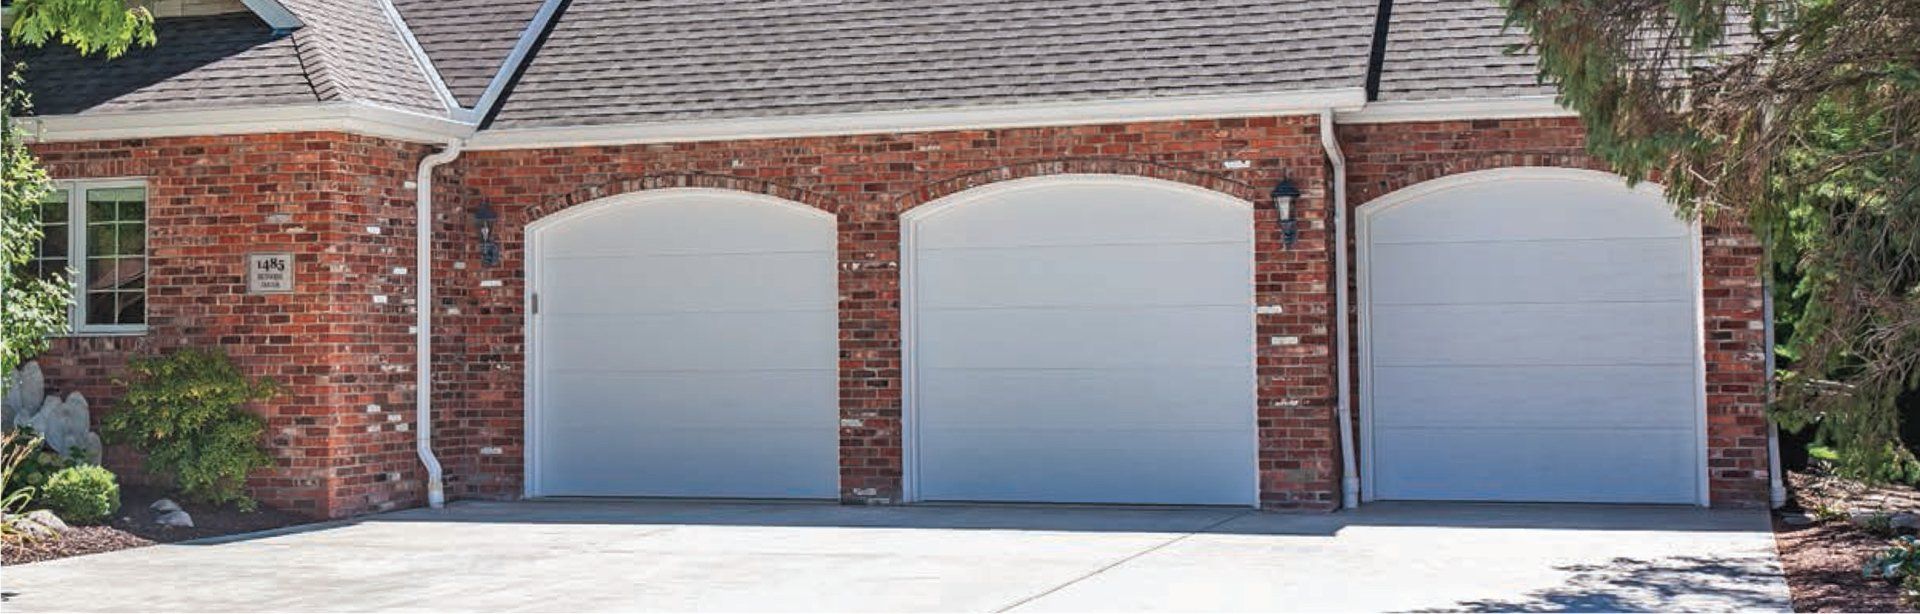 Skyline Flush Garage Doors Fresno Ca Central Valley